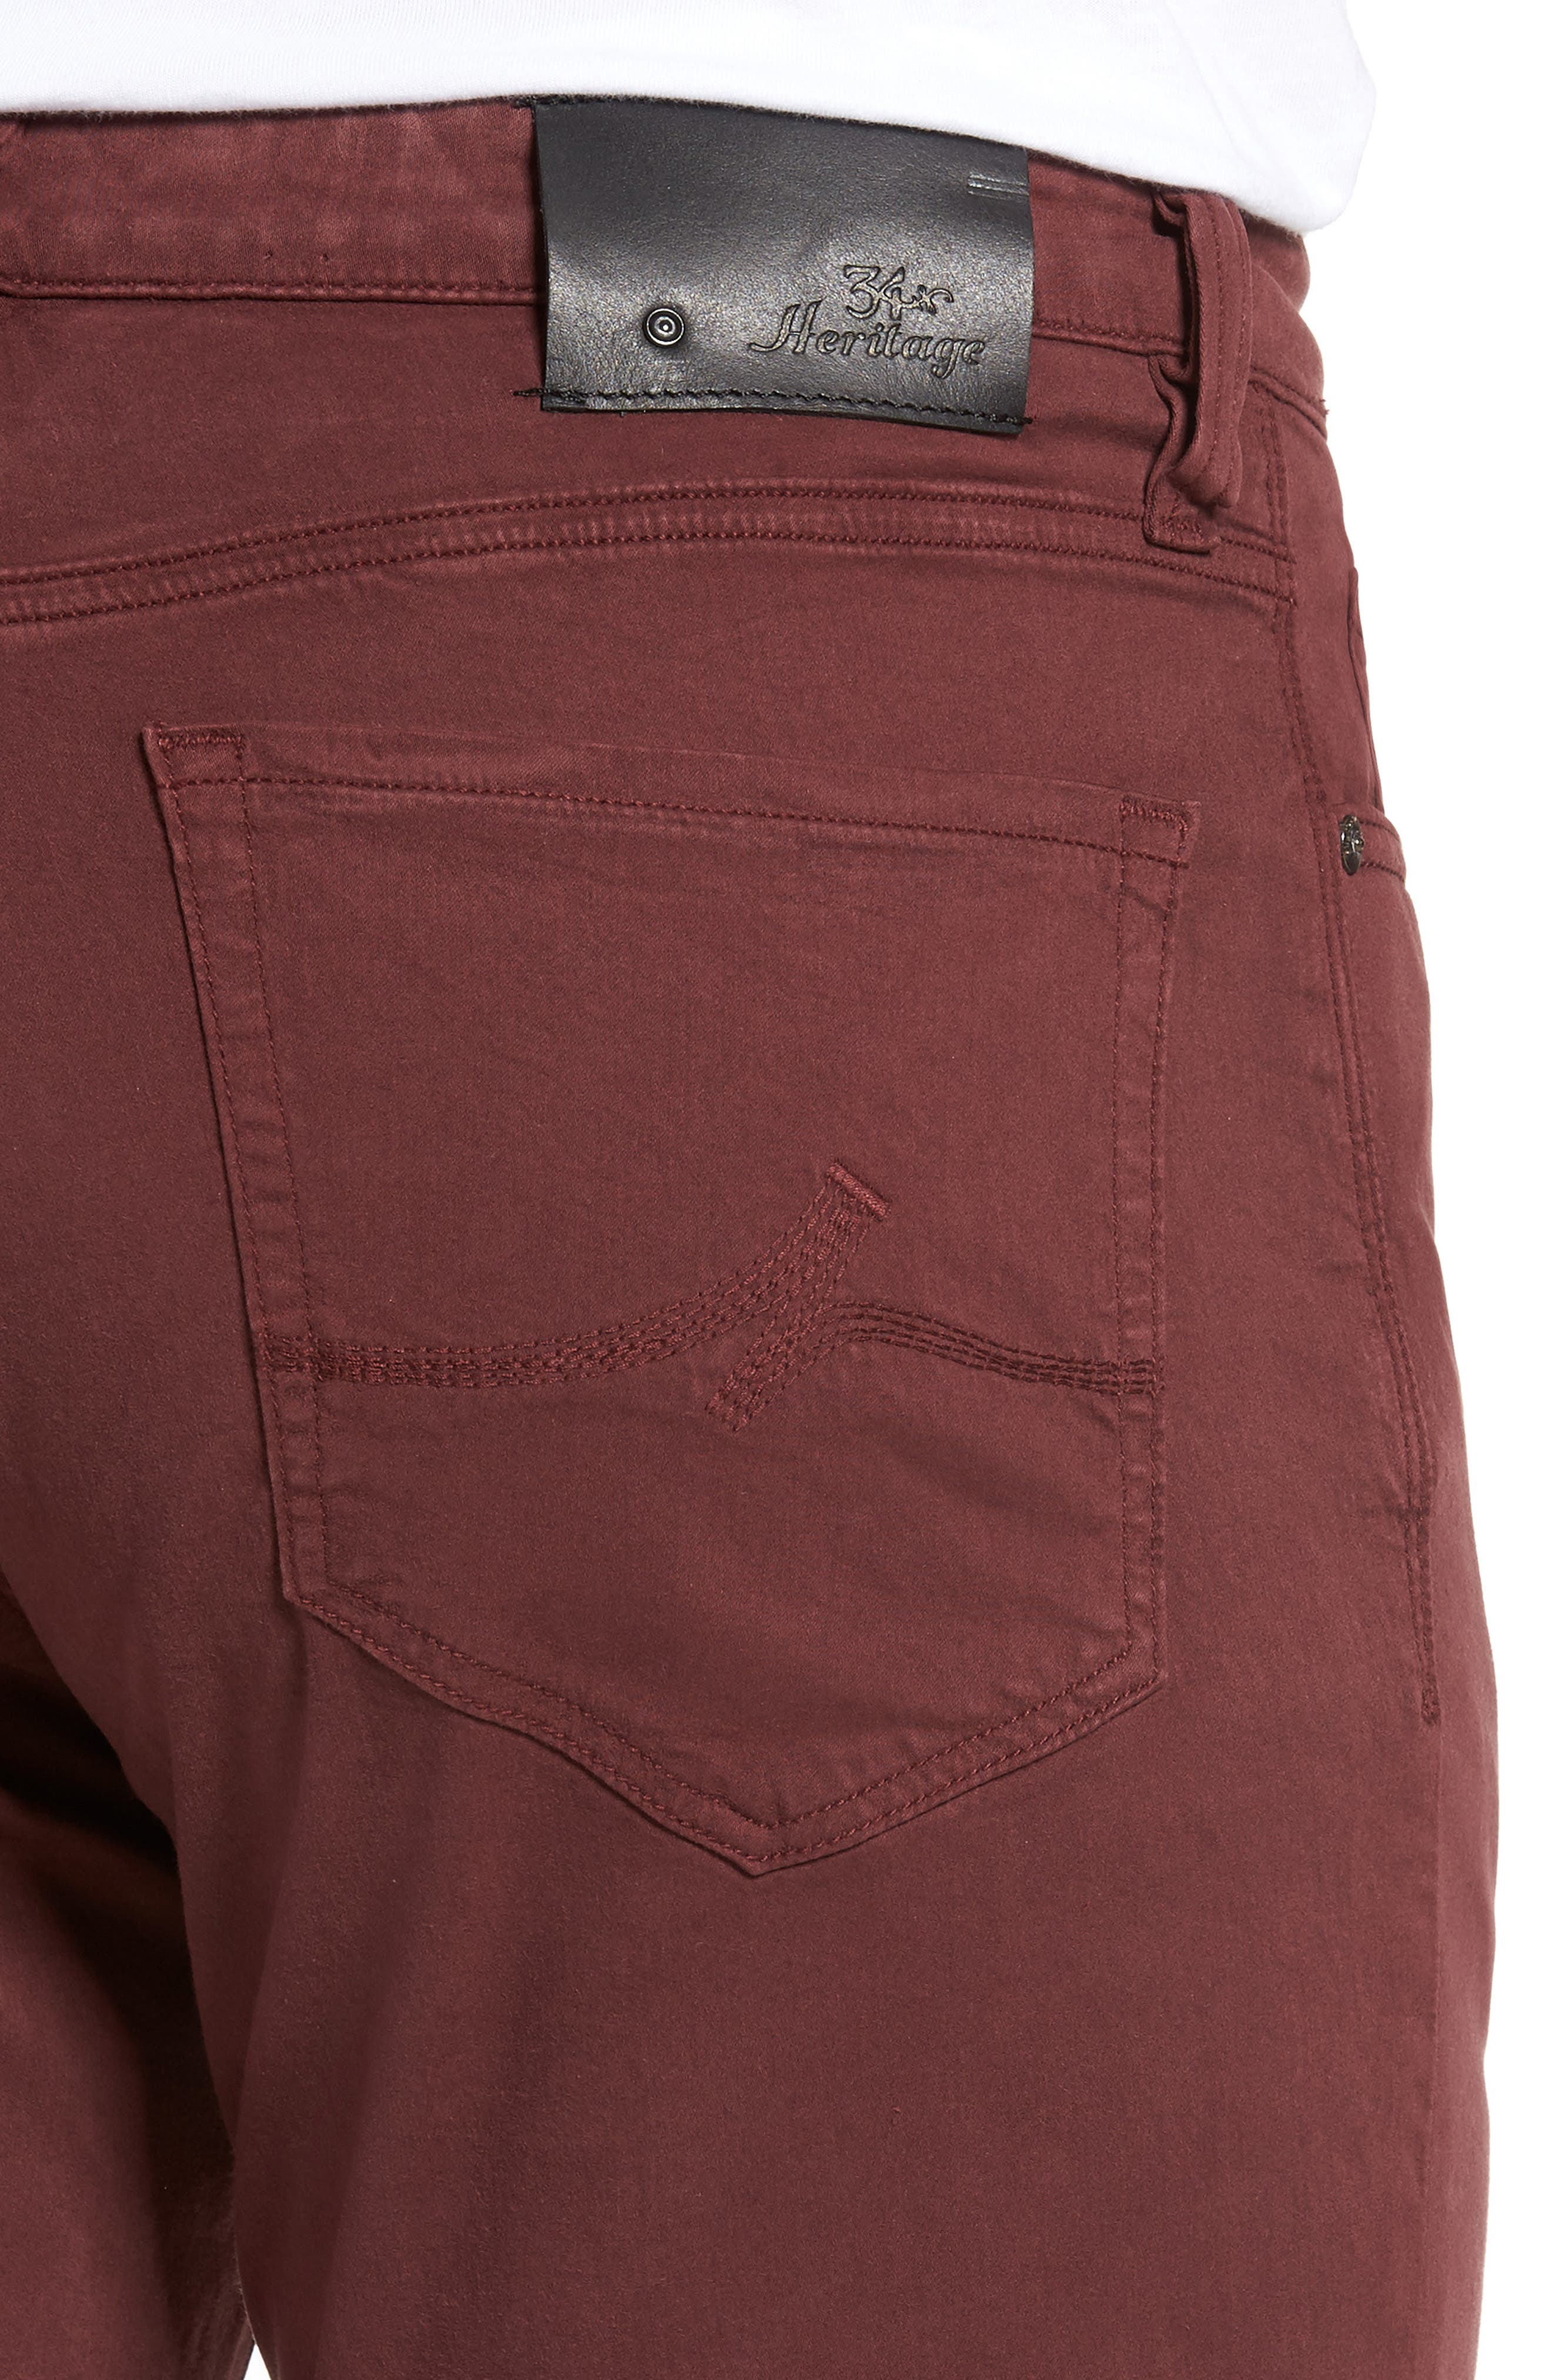 Charisma Relaxed Fit Pants,                             Alternate thumbnail 4, color,                             BORDEAUX TWILL